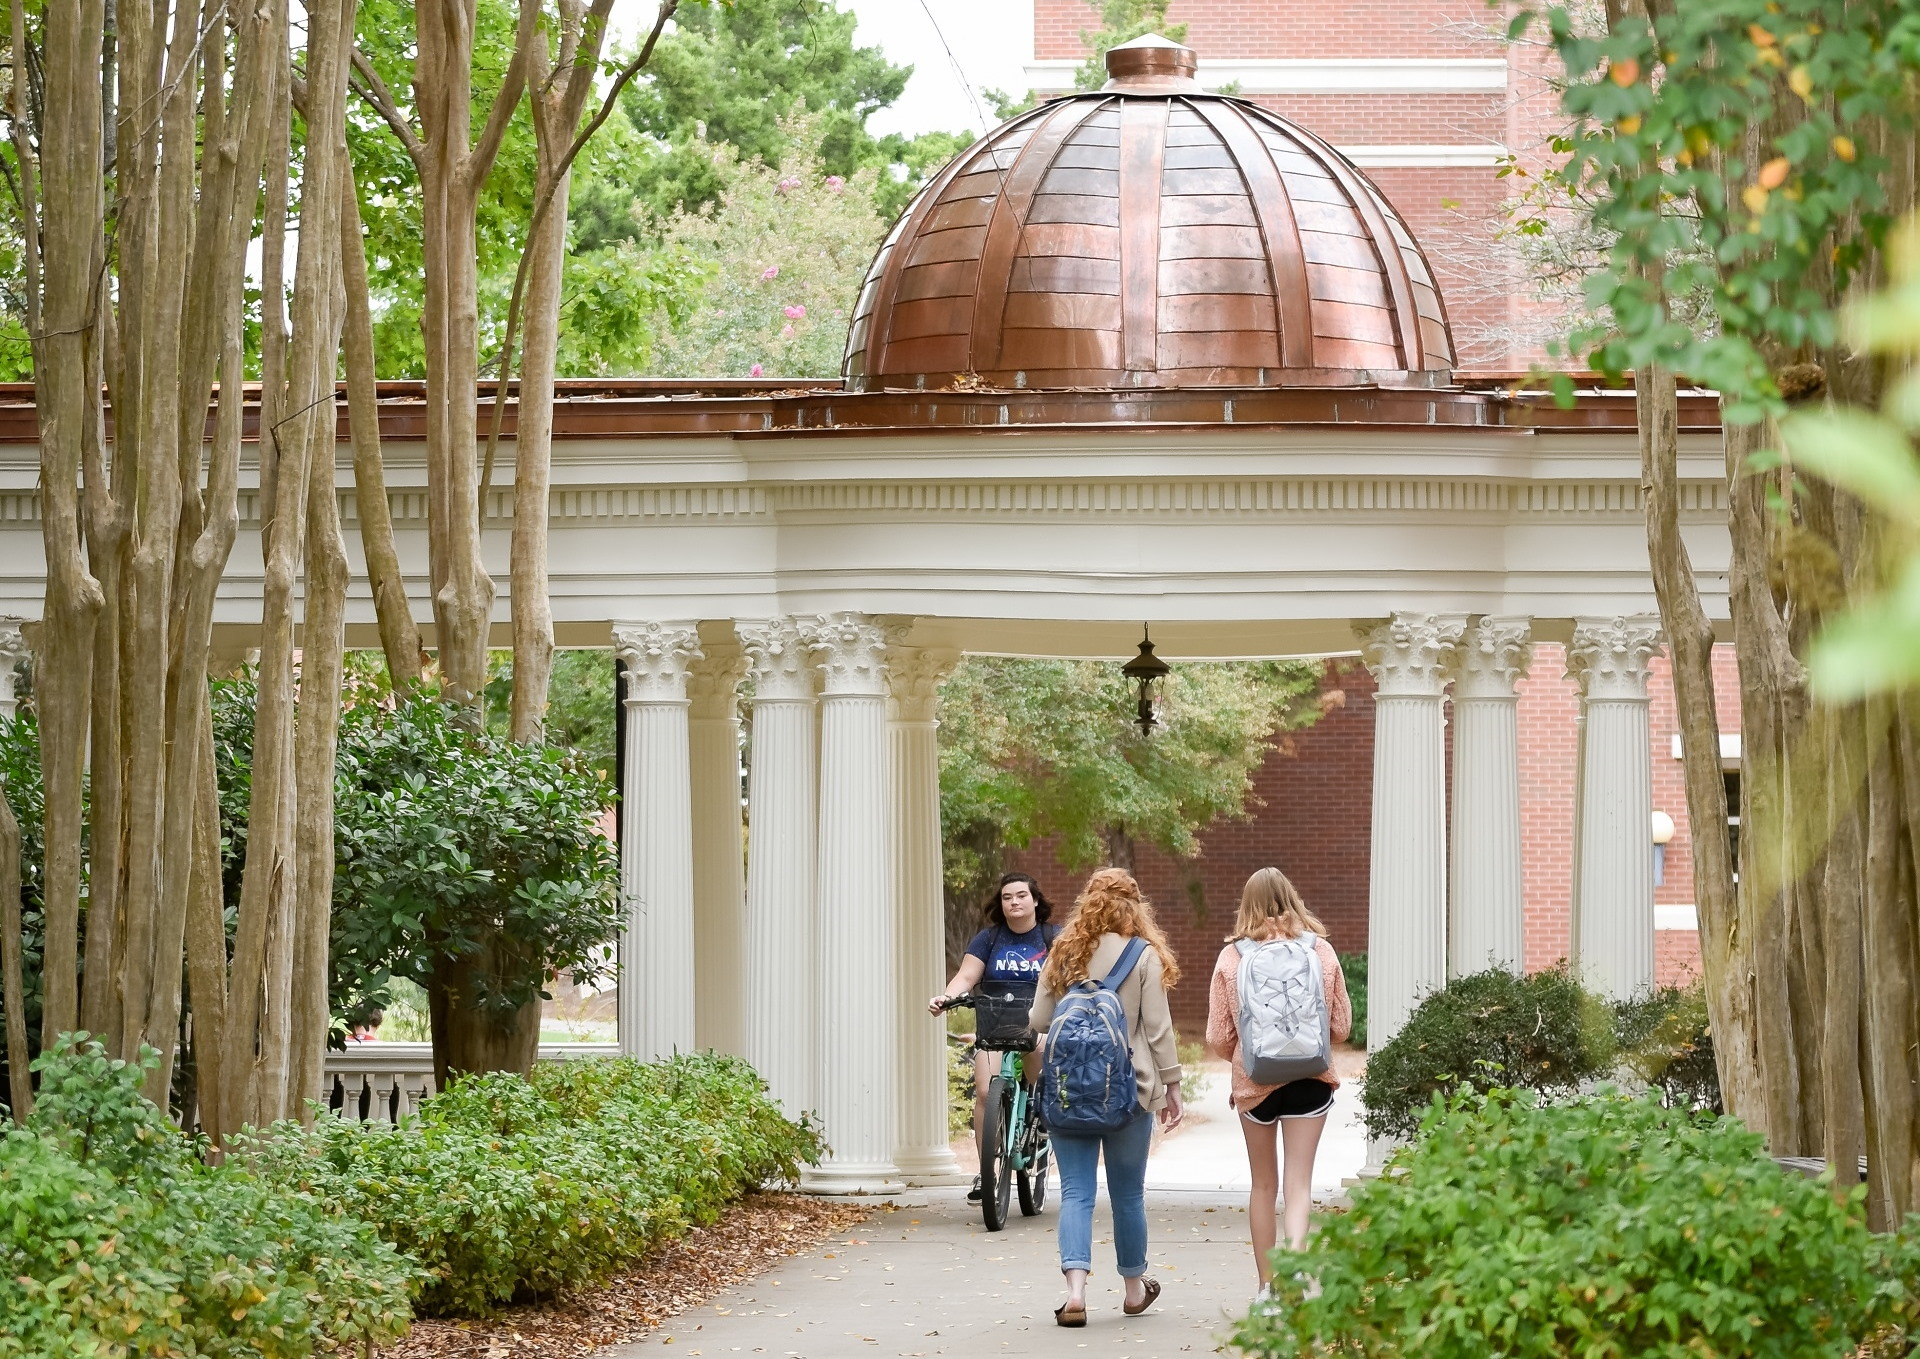 Students walking through tree lined campus